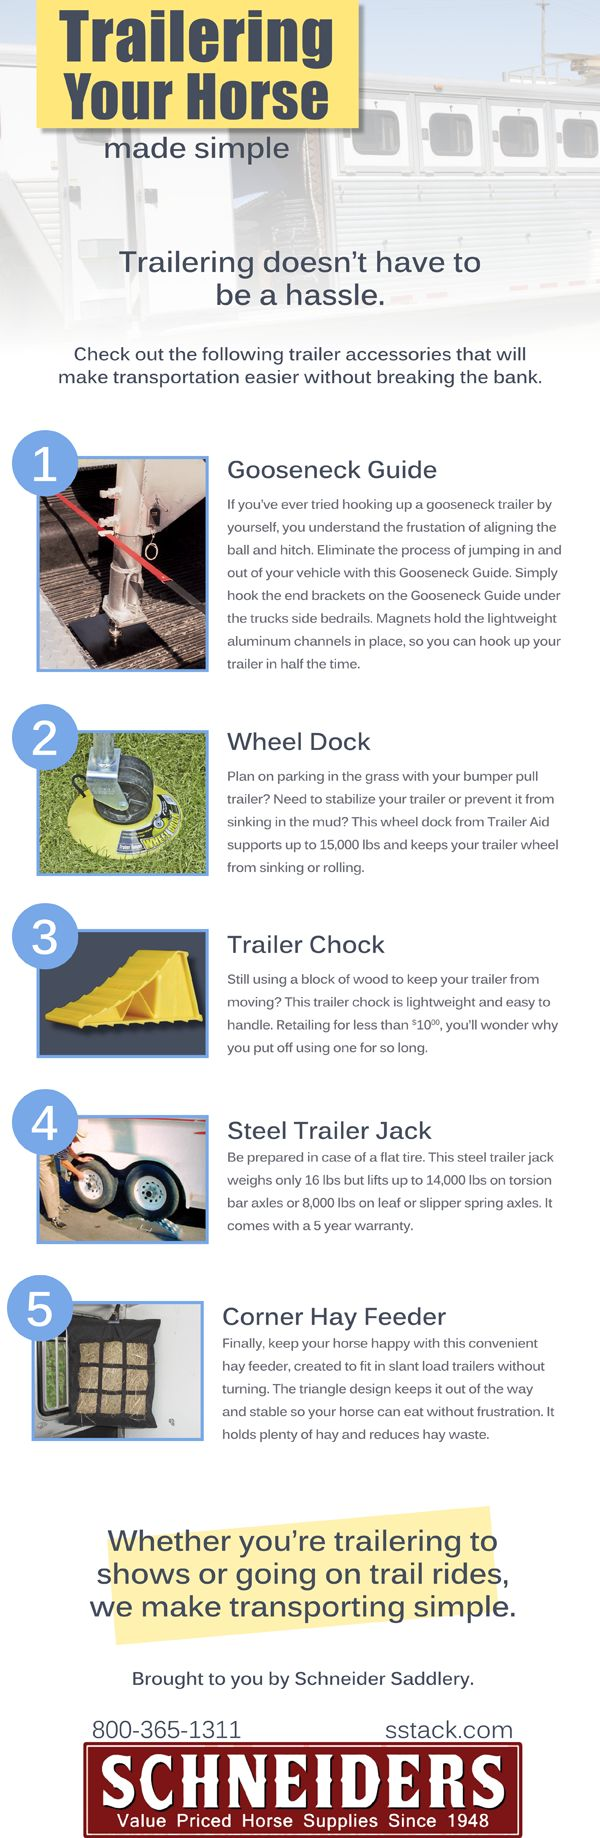 Trailering Made Simple. Trailering doesn't have to be a hassle!